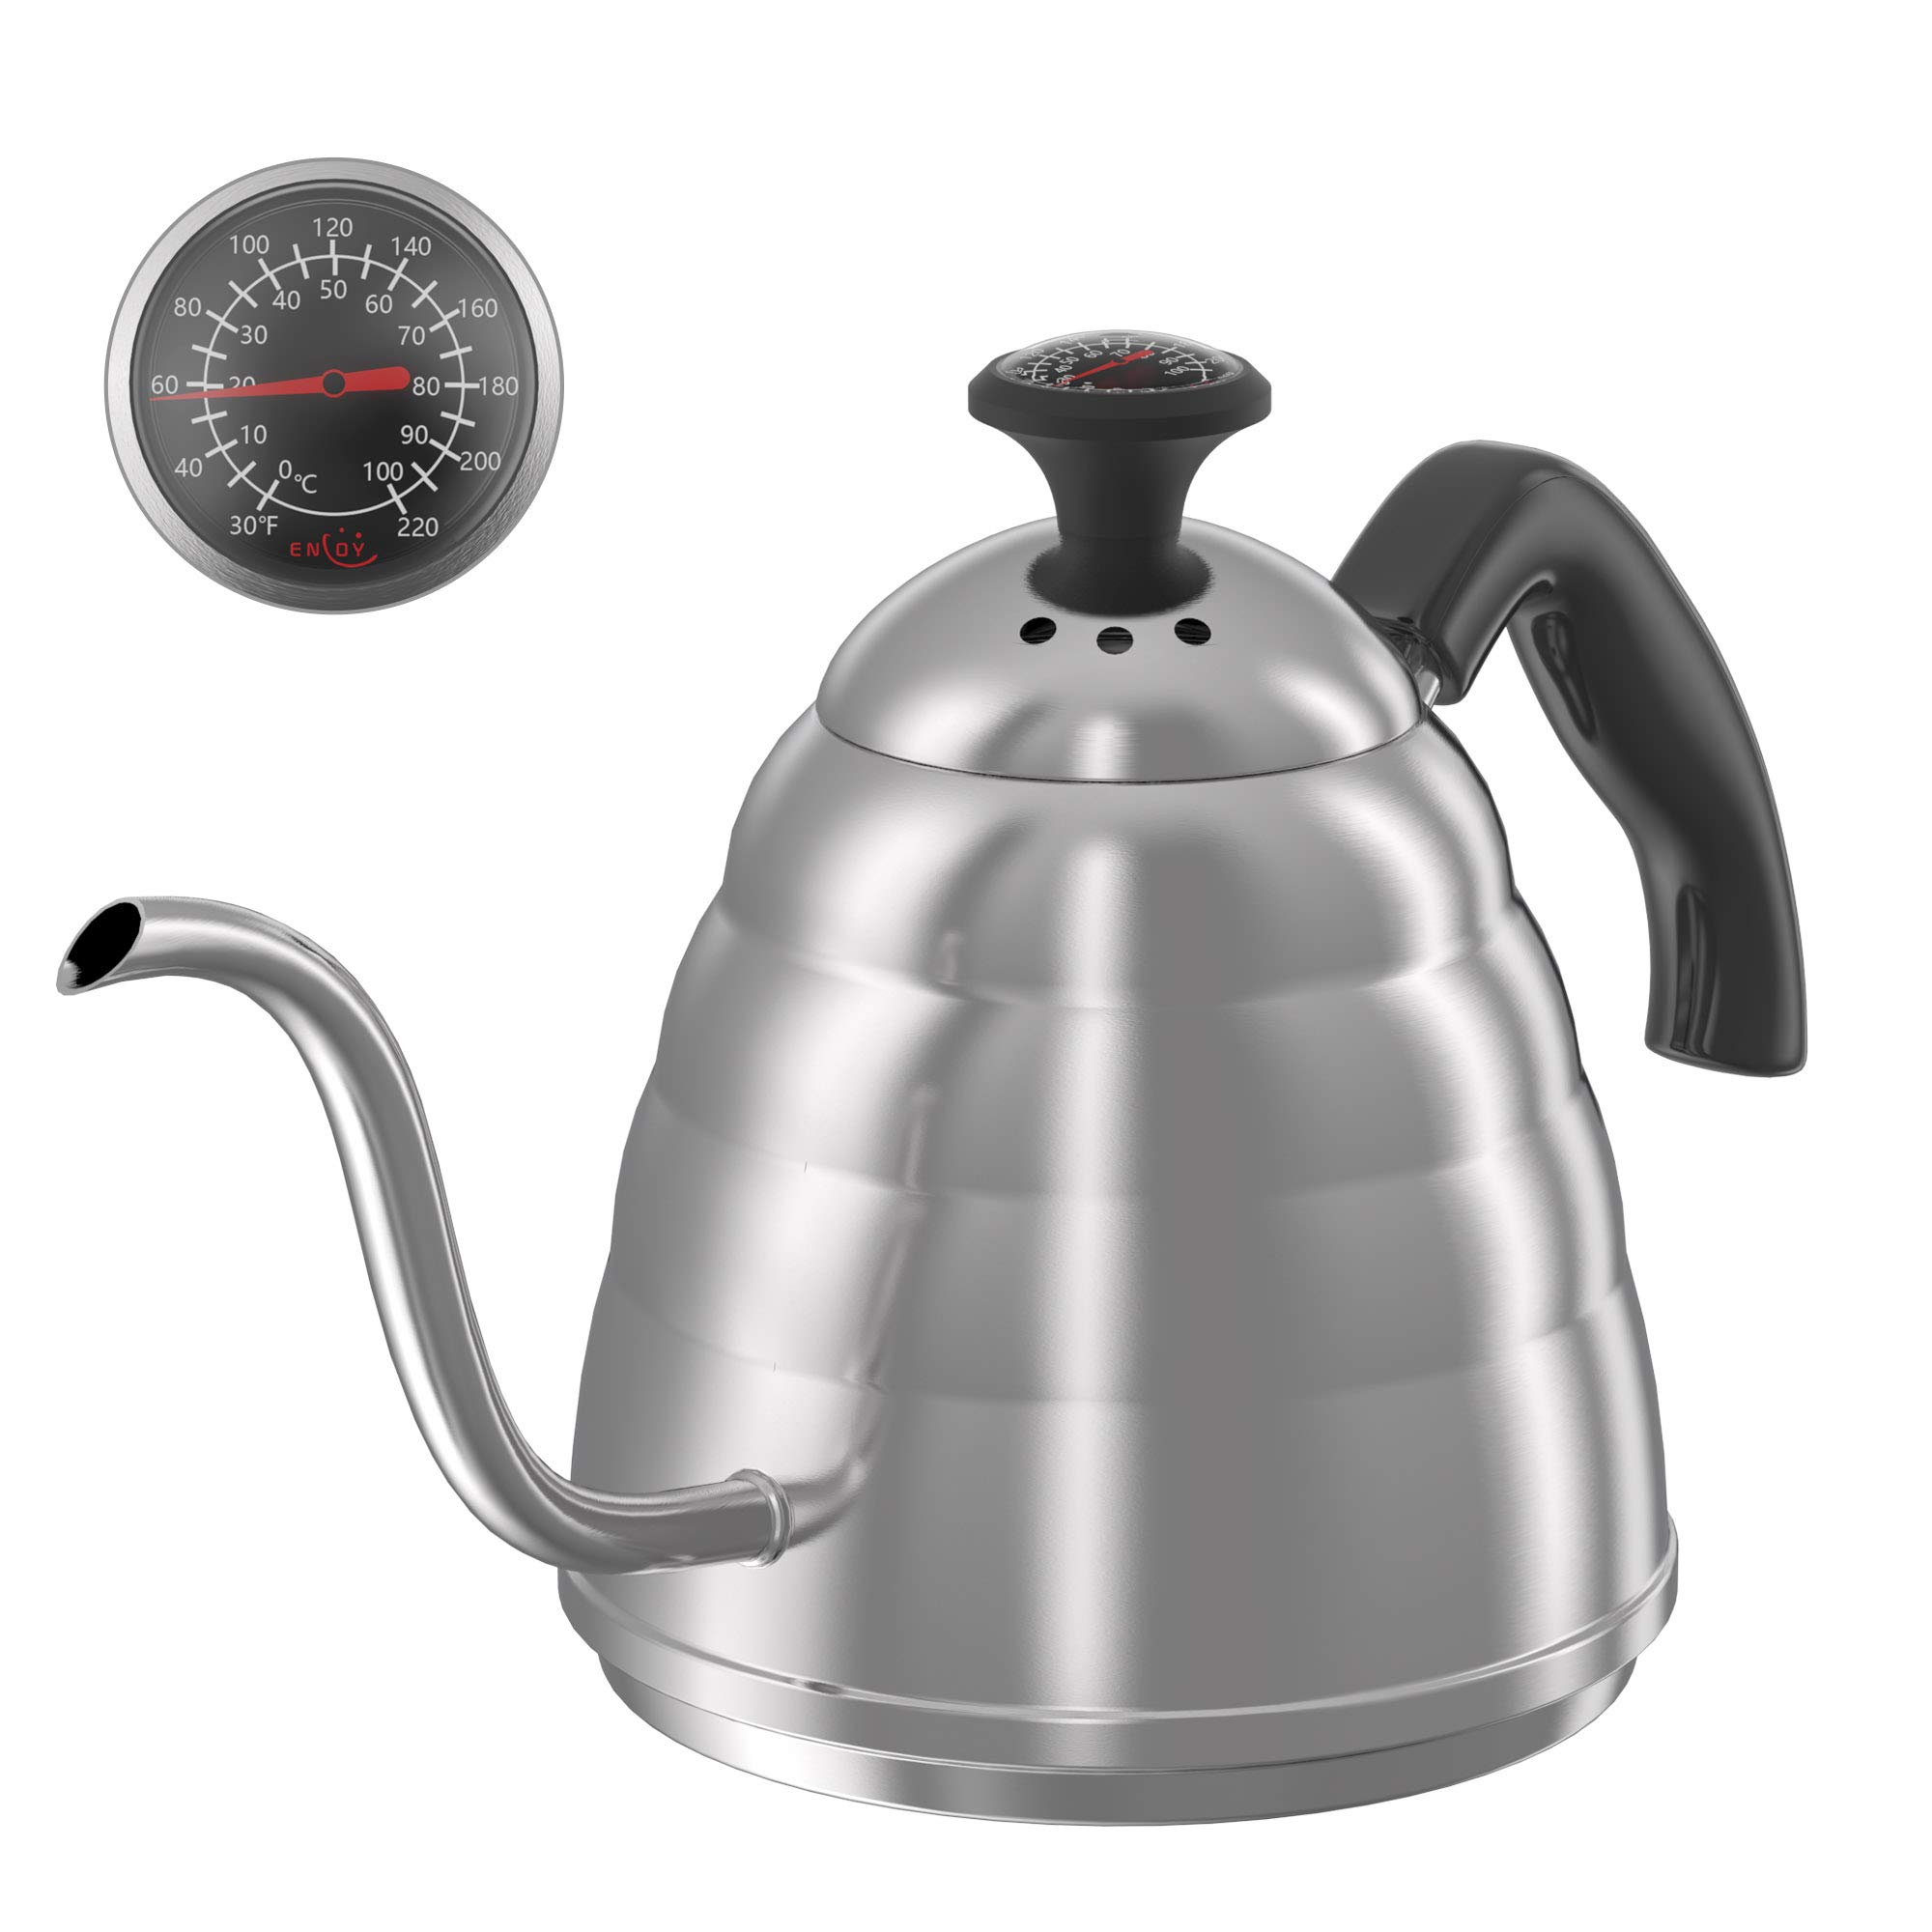 ENLOY Gooseneck Pour Over Coffee Kettle, Coffee Kettle Use for Drip Coffee and Tea, Stainless Steel Pour Over Kettle with Fixed Thermometer for Exact Temperature (34 oz) by ENLOY